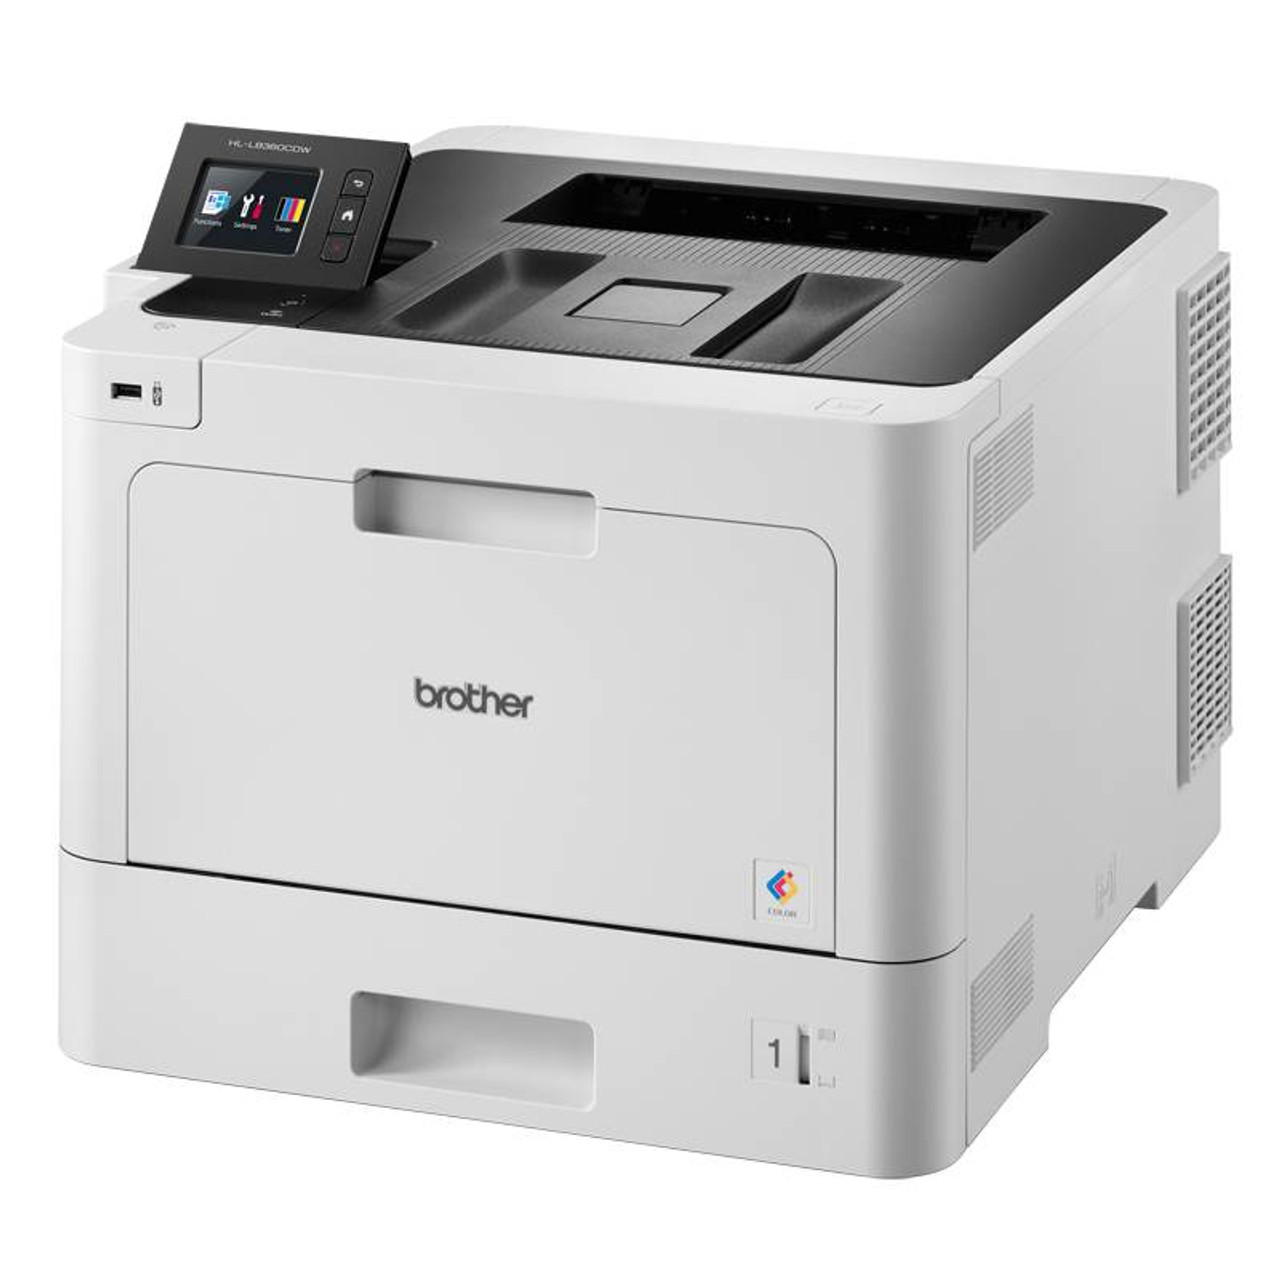 Product image for Brother HL-L8360CDW Colour Wireless Laser Printer | CX Computer Superstore